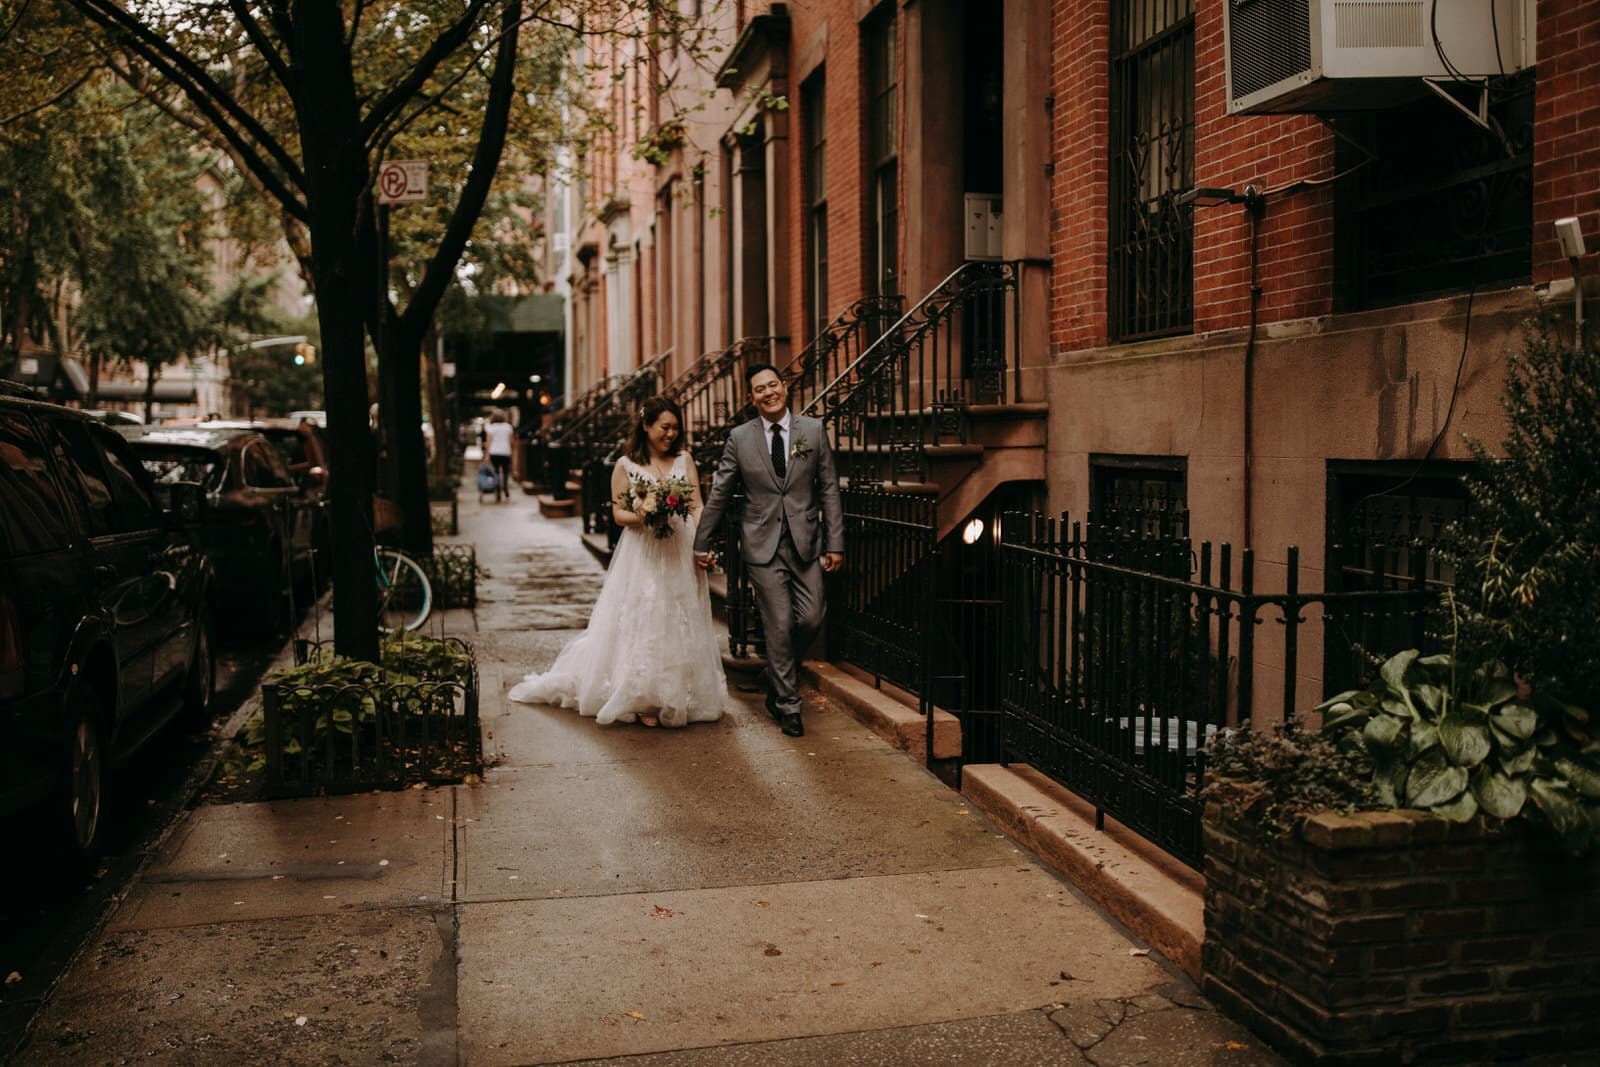 The wedding couple is walking through the streets of NYC.